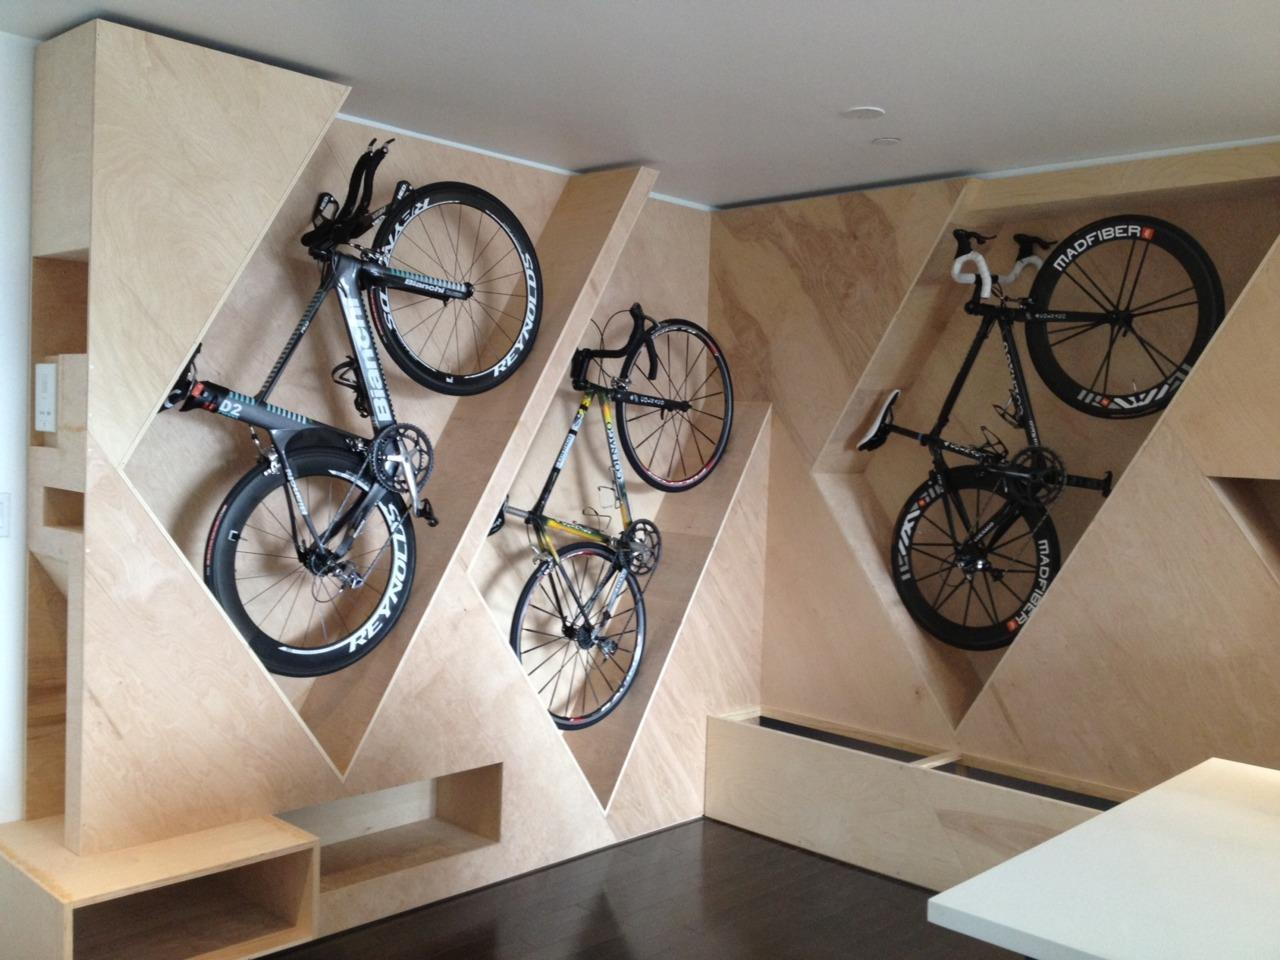 Bike storage ideas 30 creative ways of storing bike Cool wood shelf ideas